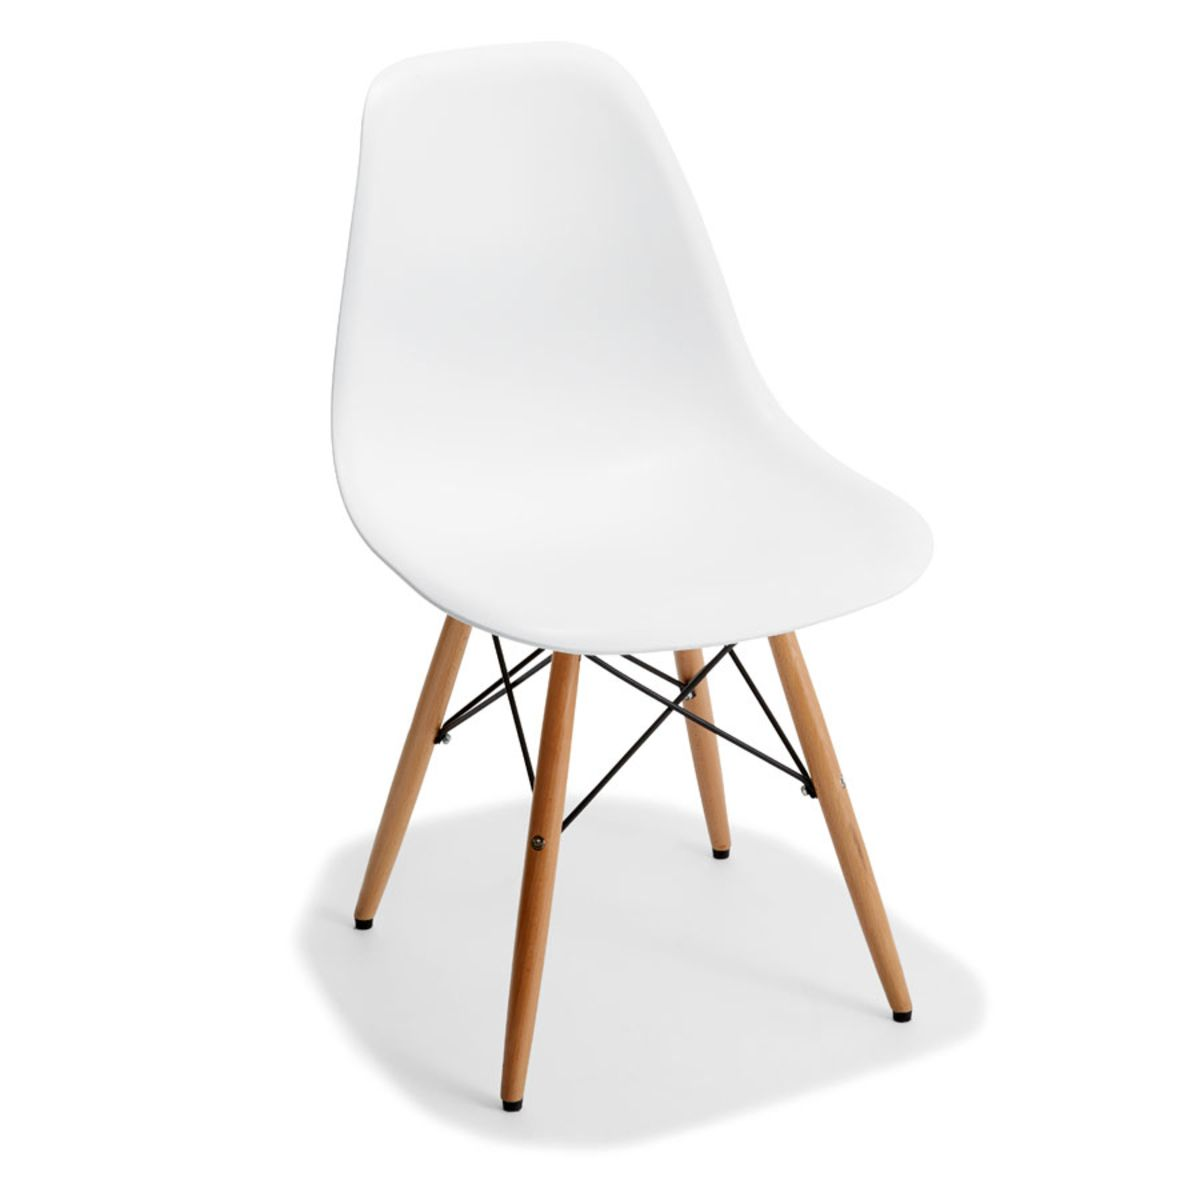 Dining Chair - White | Kmart | Dining chairs, White dining ...